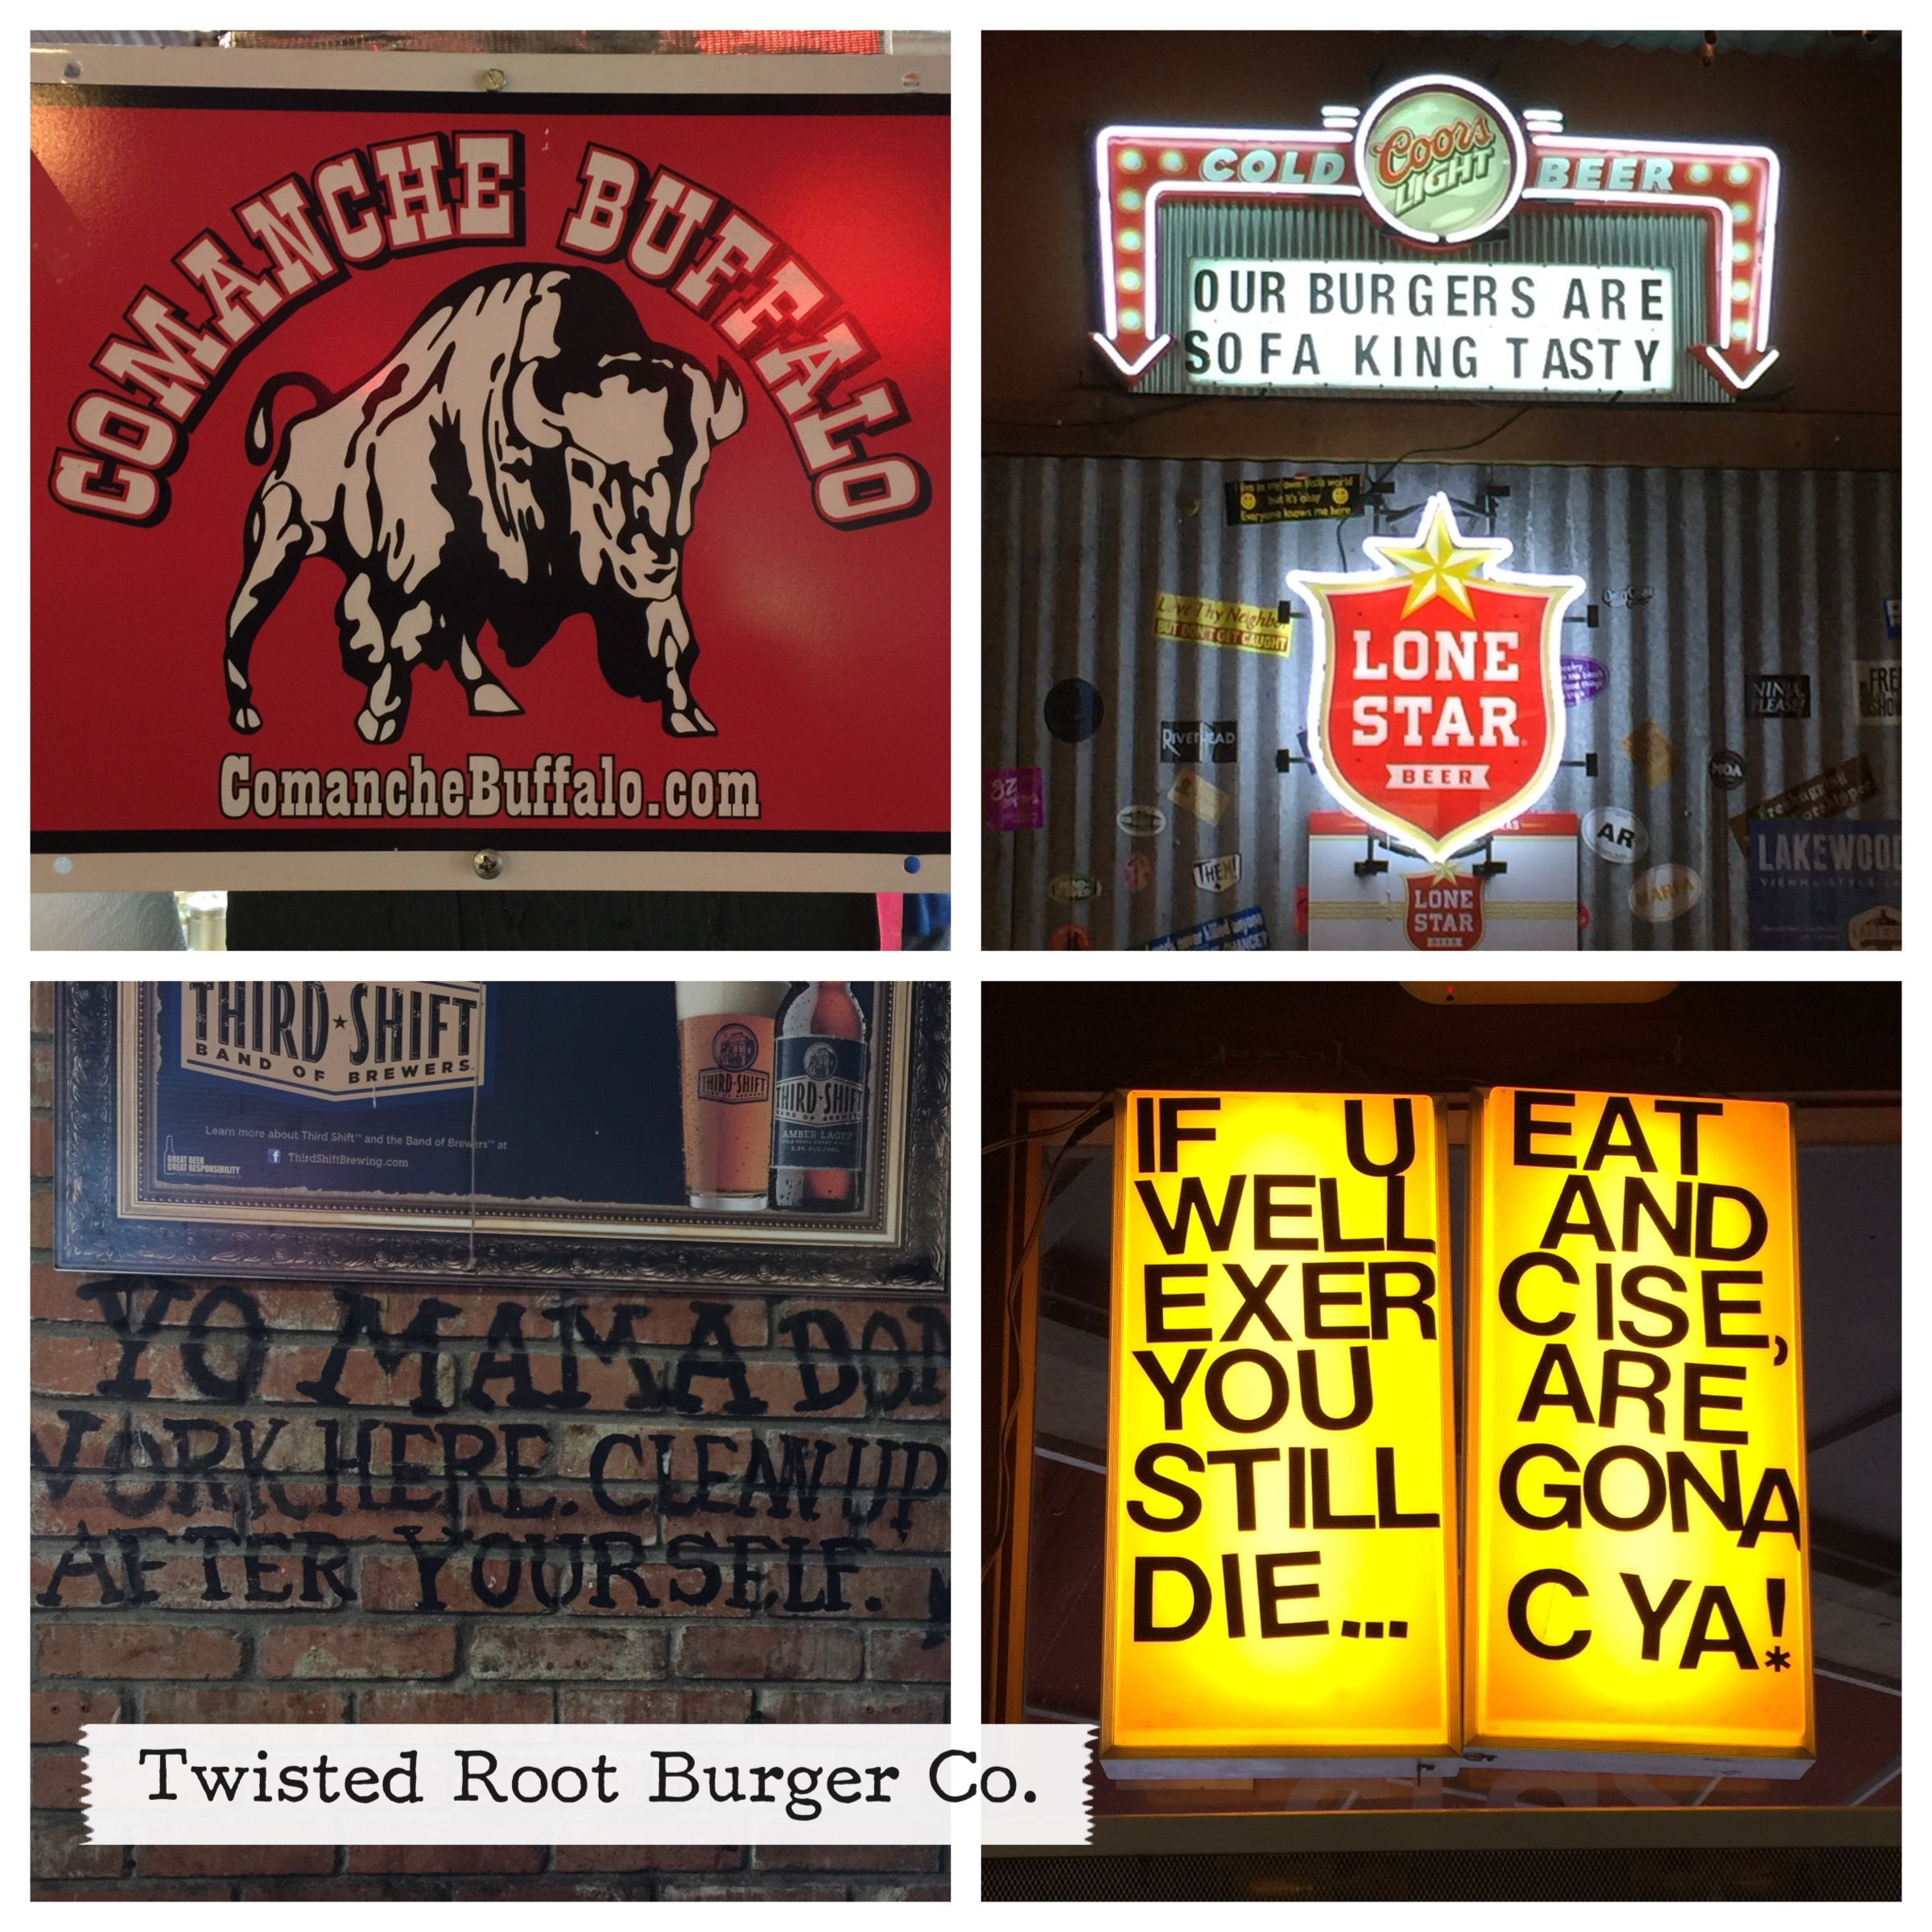 Twisted Root Burger Co. in Deep Ellum